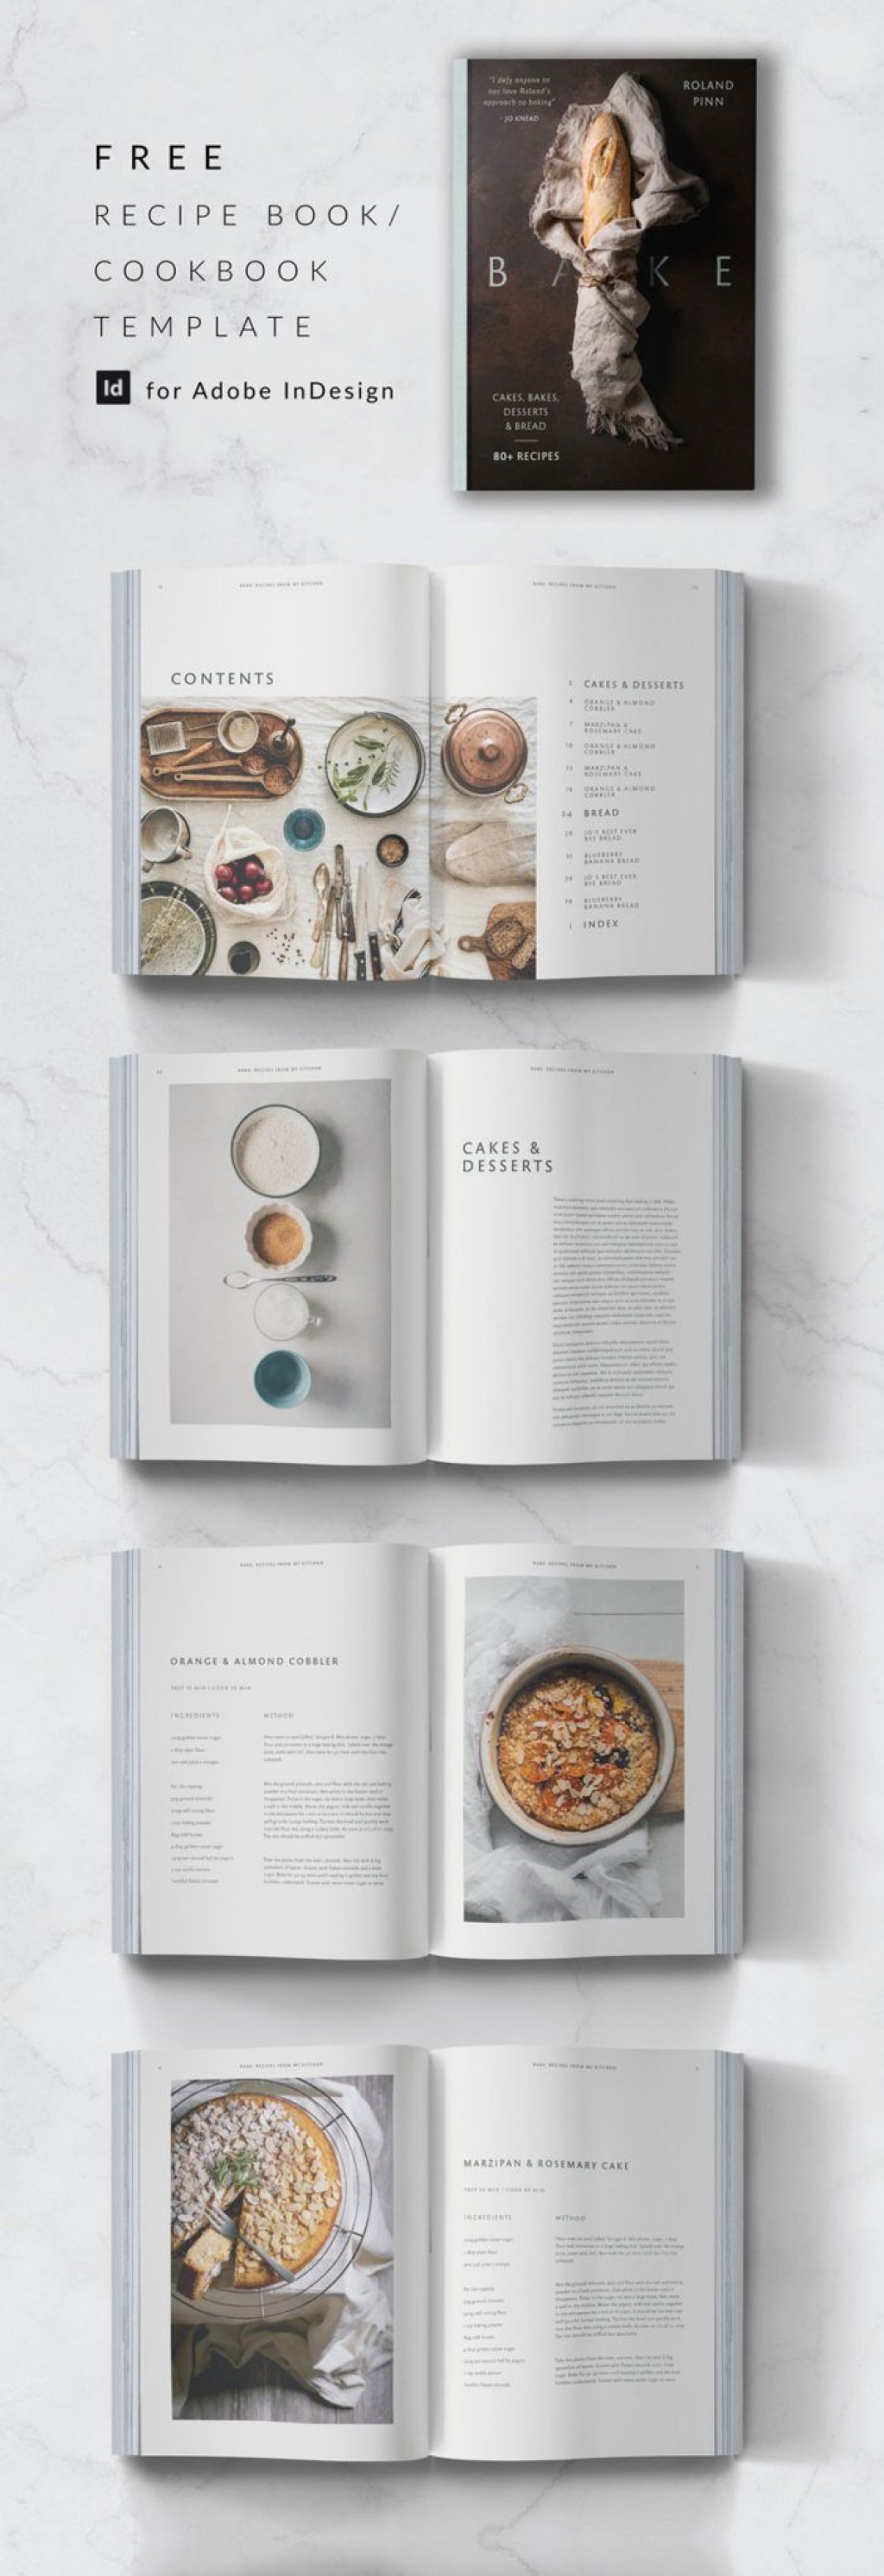 011 Remarkable Create Your Own Cookbook Free Template Sample Large